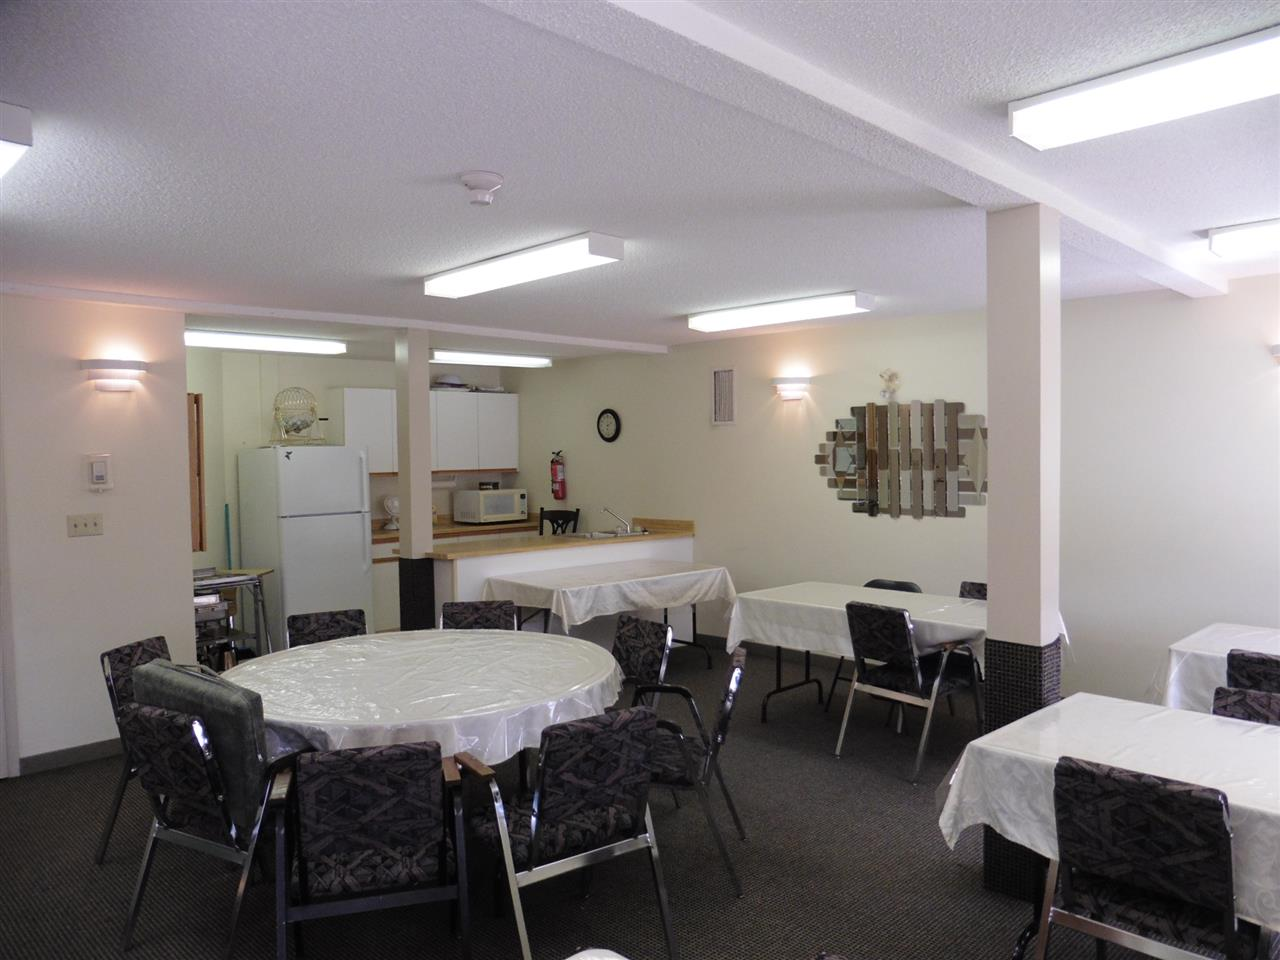 Social Room/Activities Room for larger family gatherings!